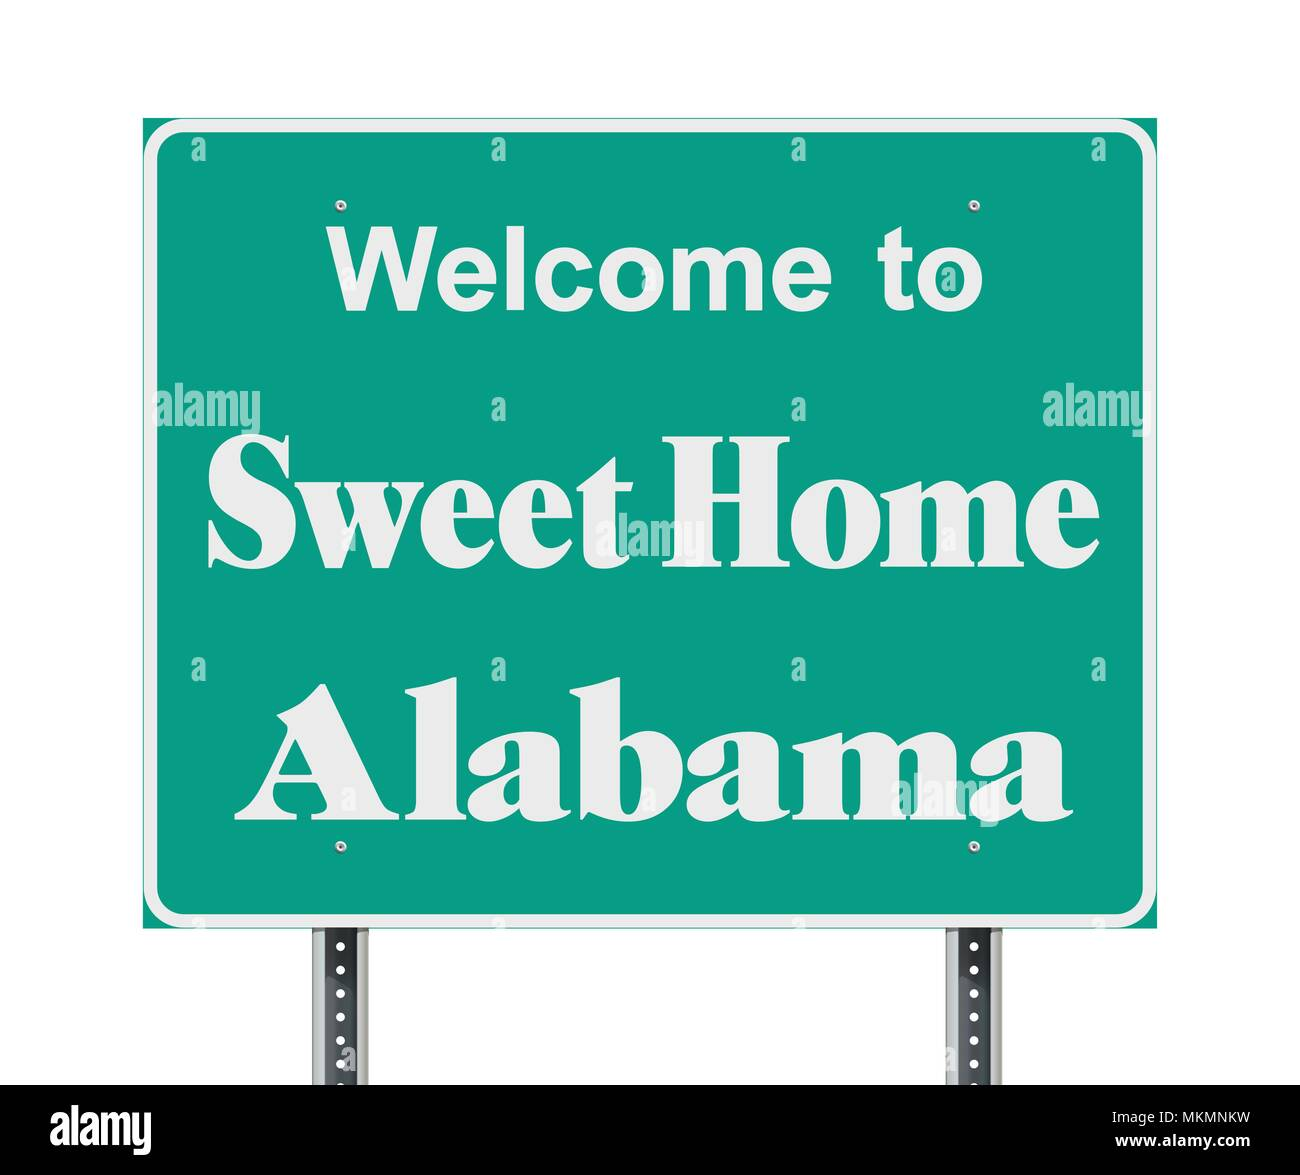 Nov 01, 2011· sweet home alabama. Vector Illustration Of The Welcome To Sweet Home Alabama Green Road Sign Stock Vector Image Art Alamy